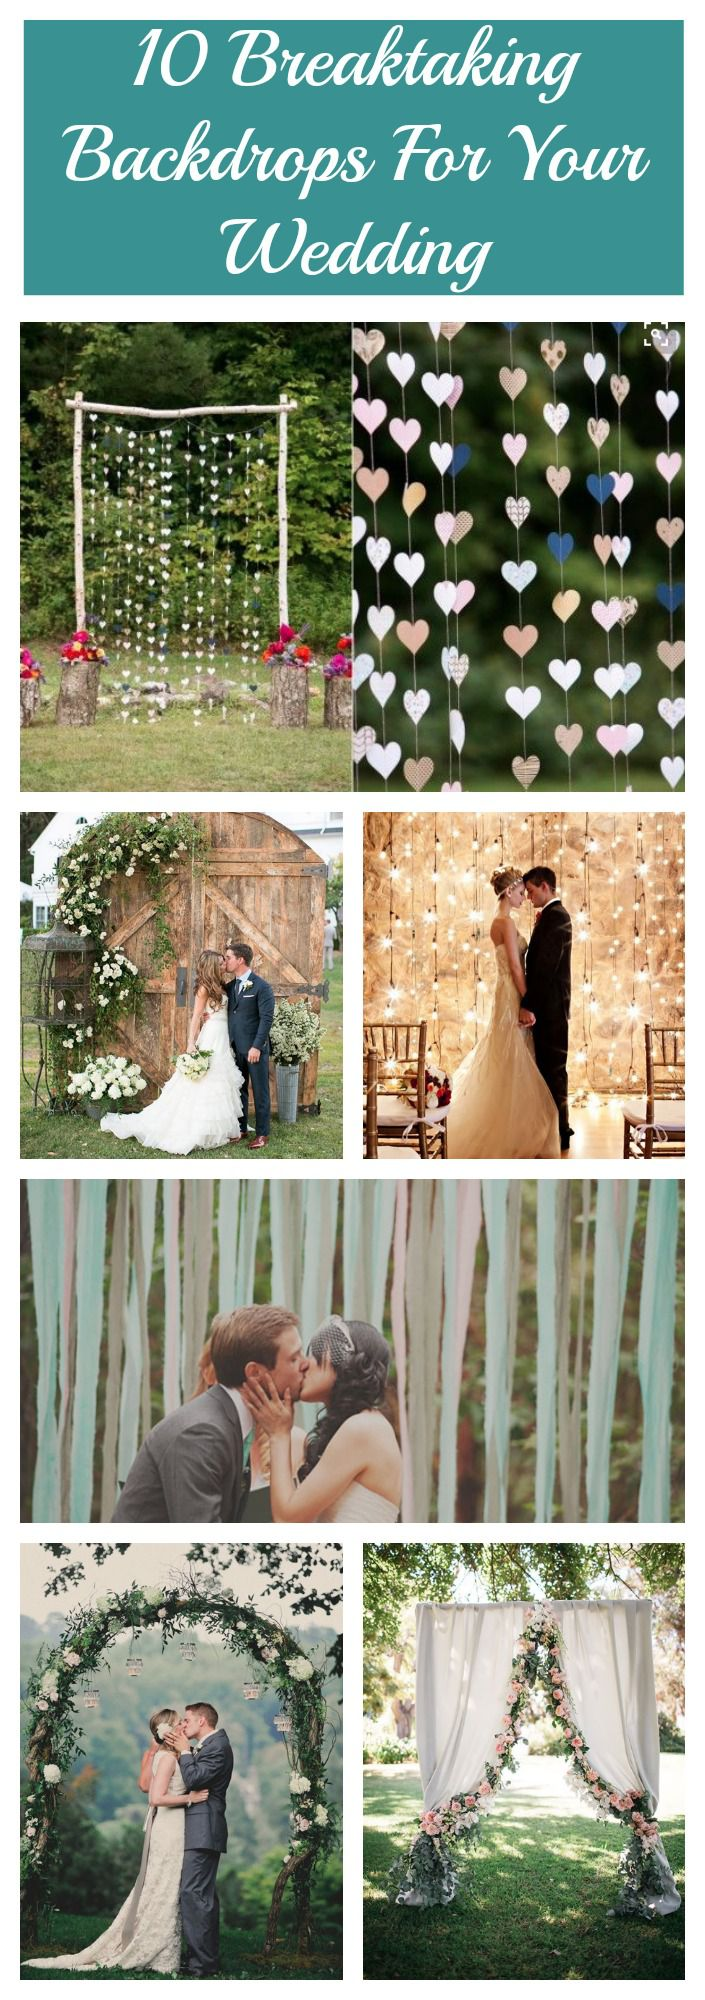 10 Breathtaking Backdrops For Your Wedding Rustic Wedding Chic